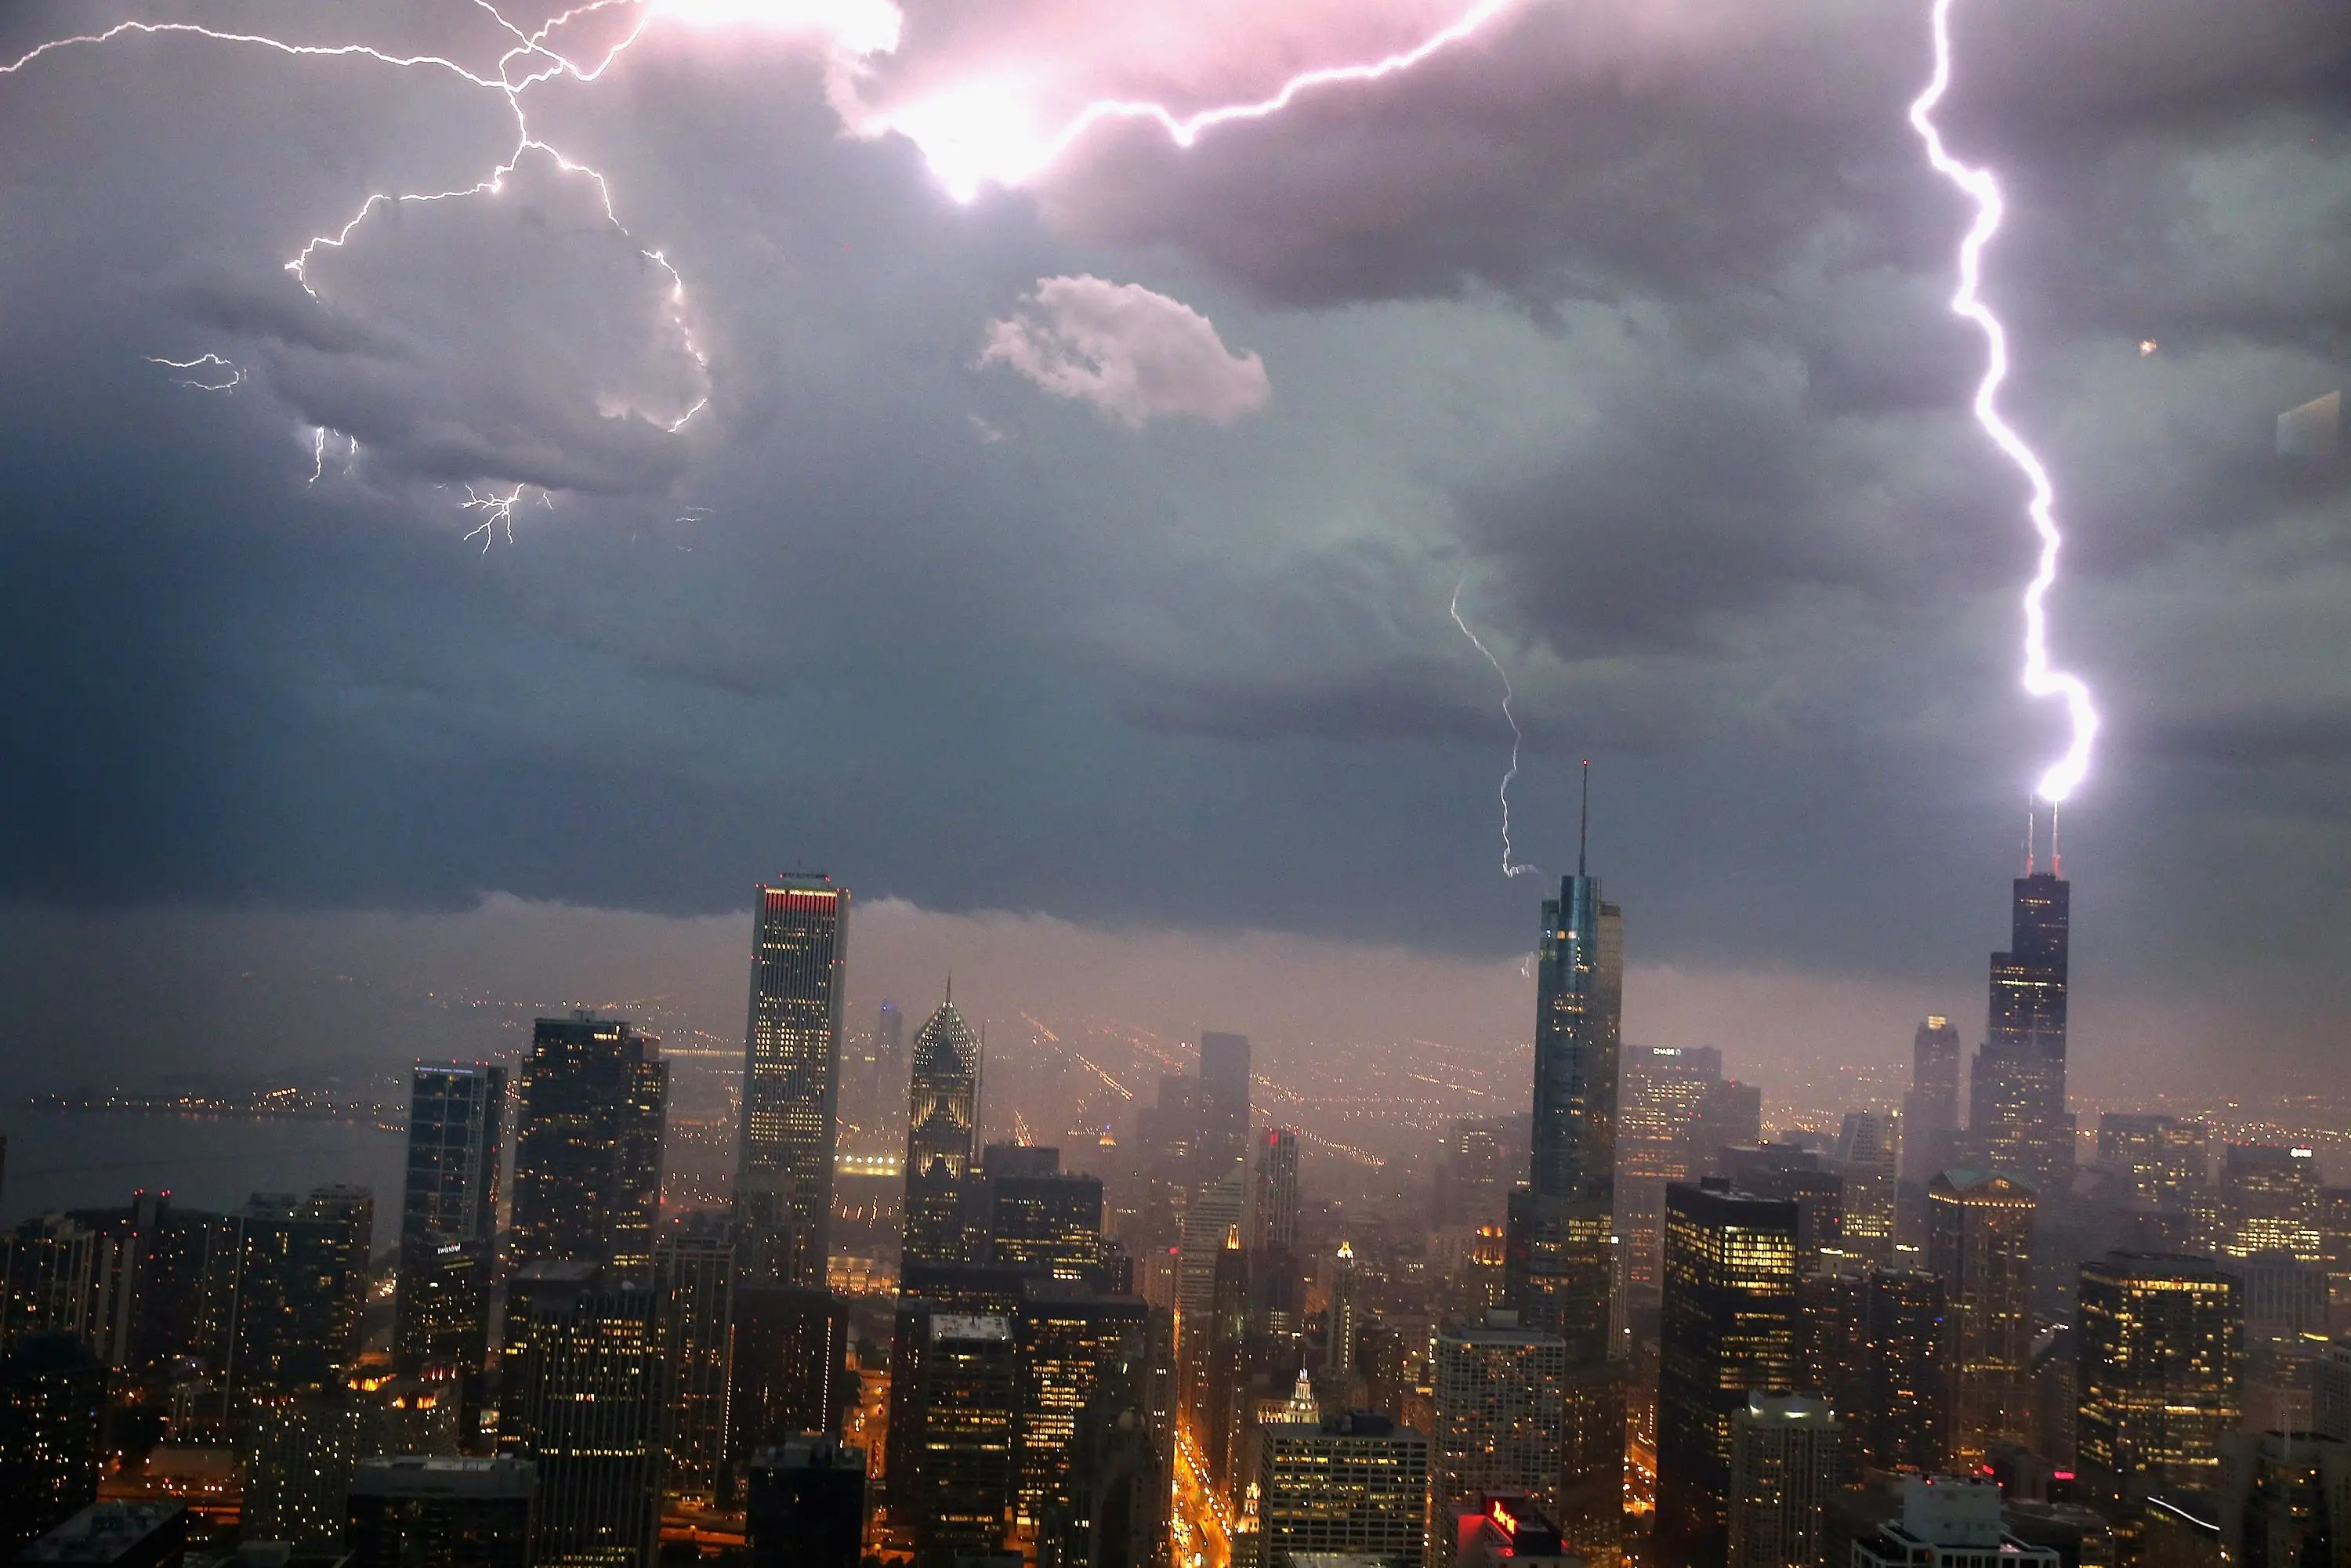 Lightning does strike twice. And some places, like the Empire State Building, get struck up to 100 times a year.